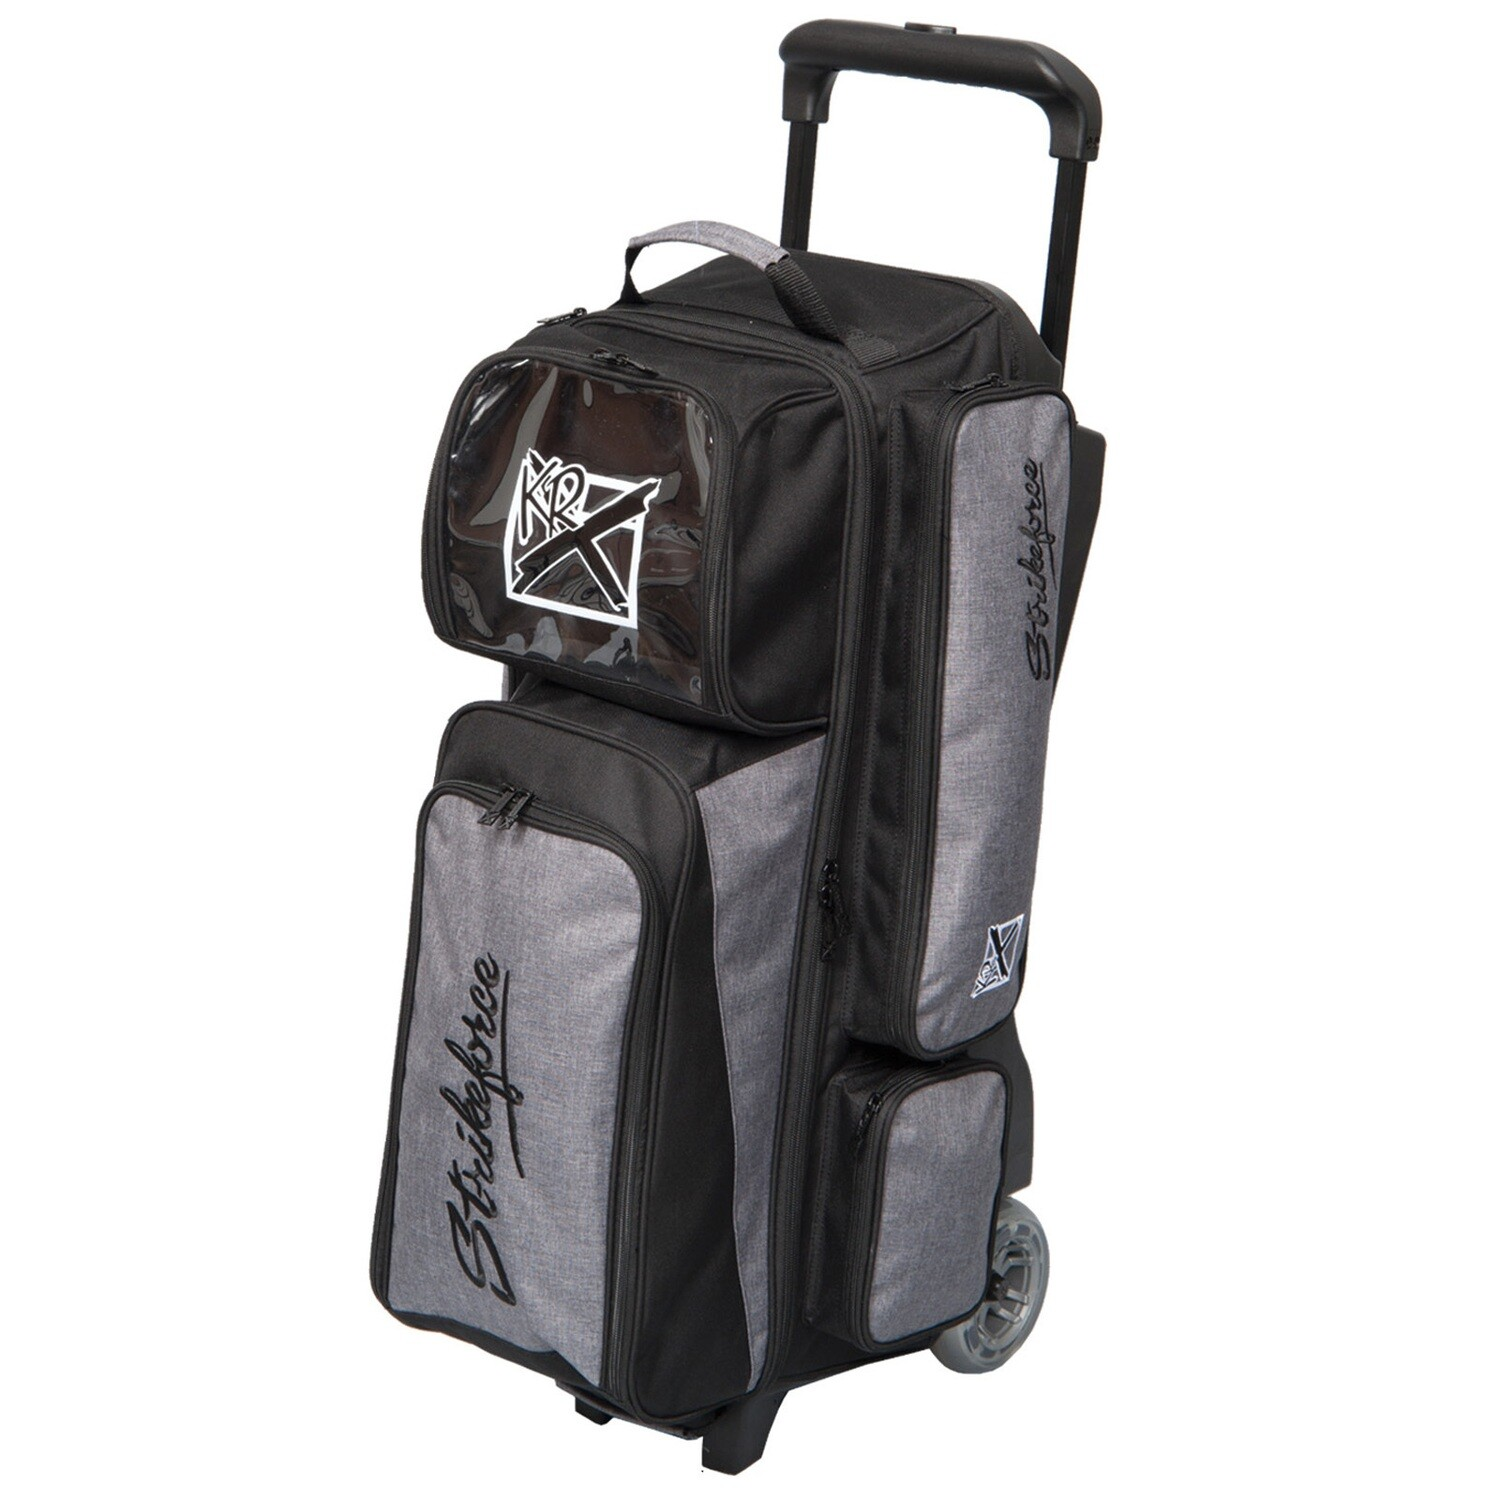 KR Strikeforce KRush Stone/Black 3 Ball Roller Bowling Bag